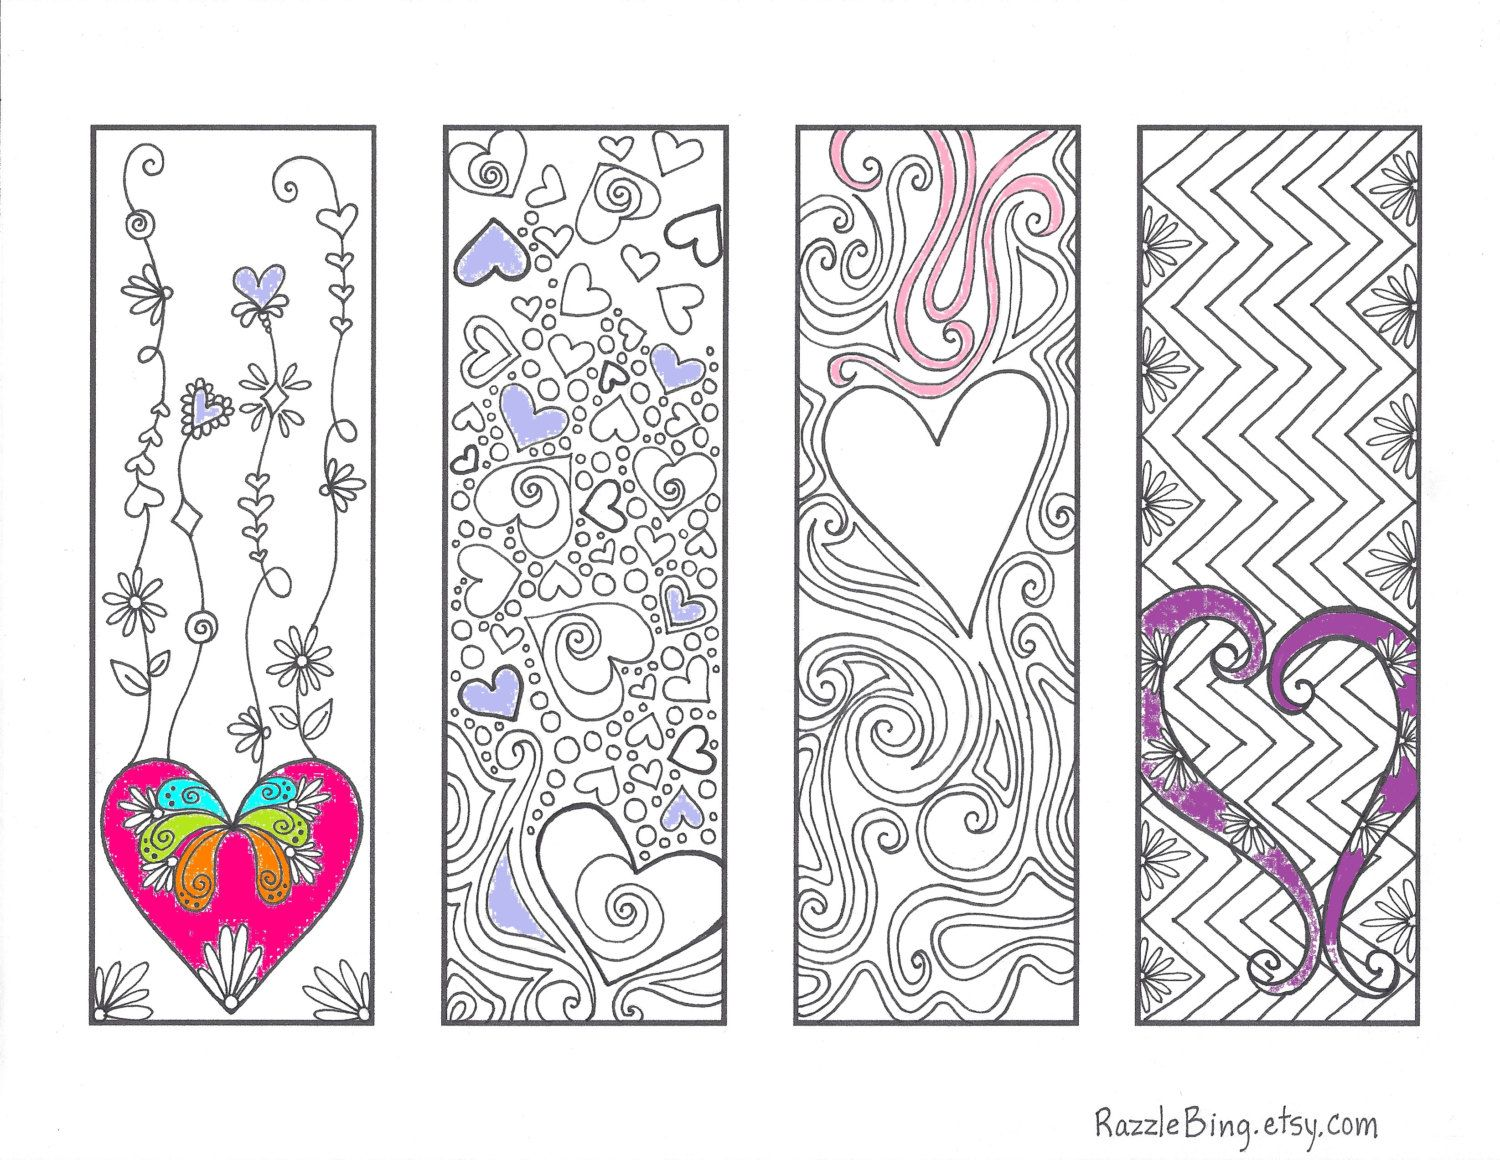 Valentine bookmark to color - Diy Bookmark Printable Coloring Page Zentangle Inspired Valentines Day Love Of Hearts Zendoodle Doodle Pdf Instant Download